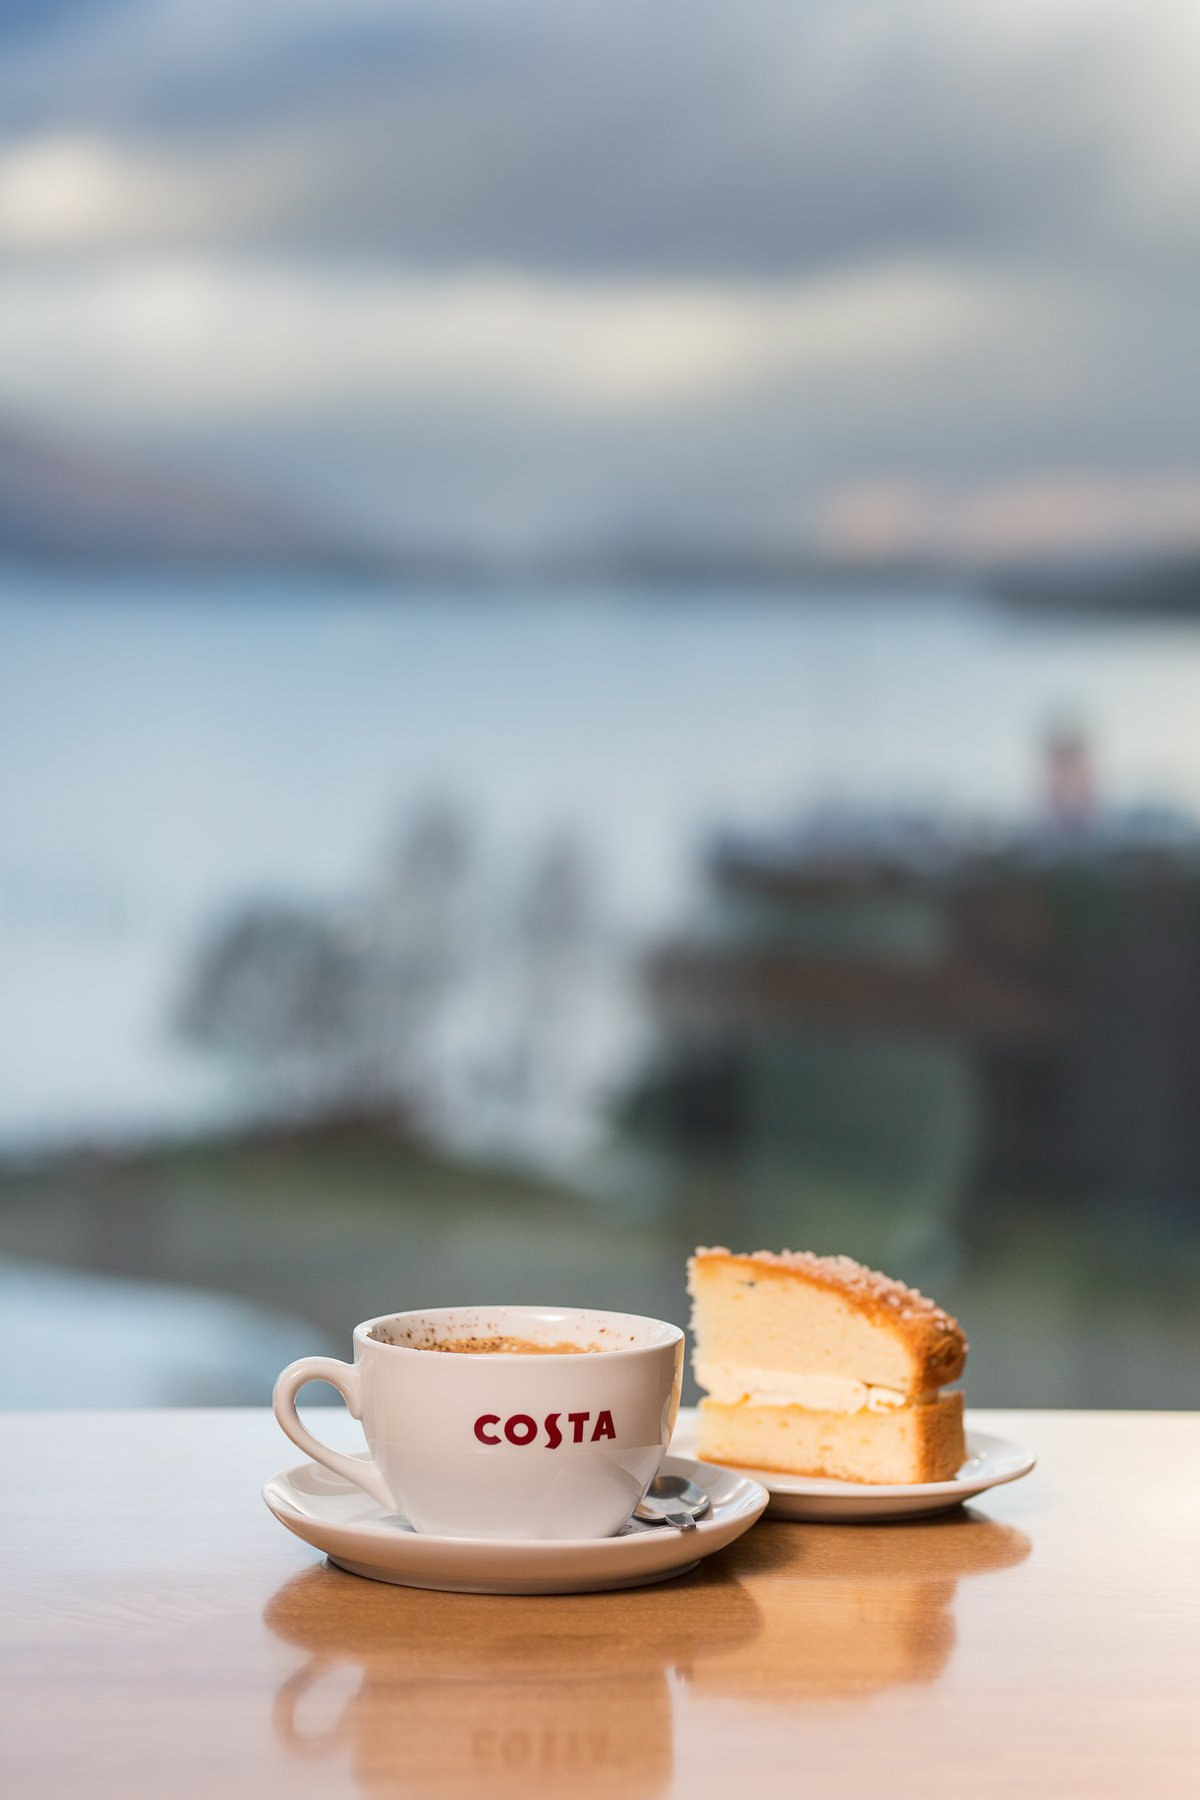 Costa coffee and cake at SEA LIFE Loch Lomond Loch view coffee shop